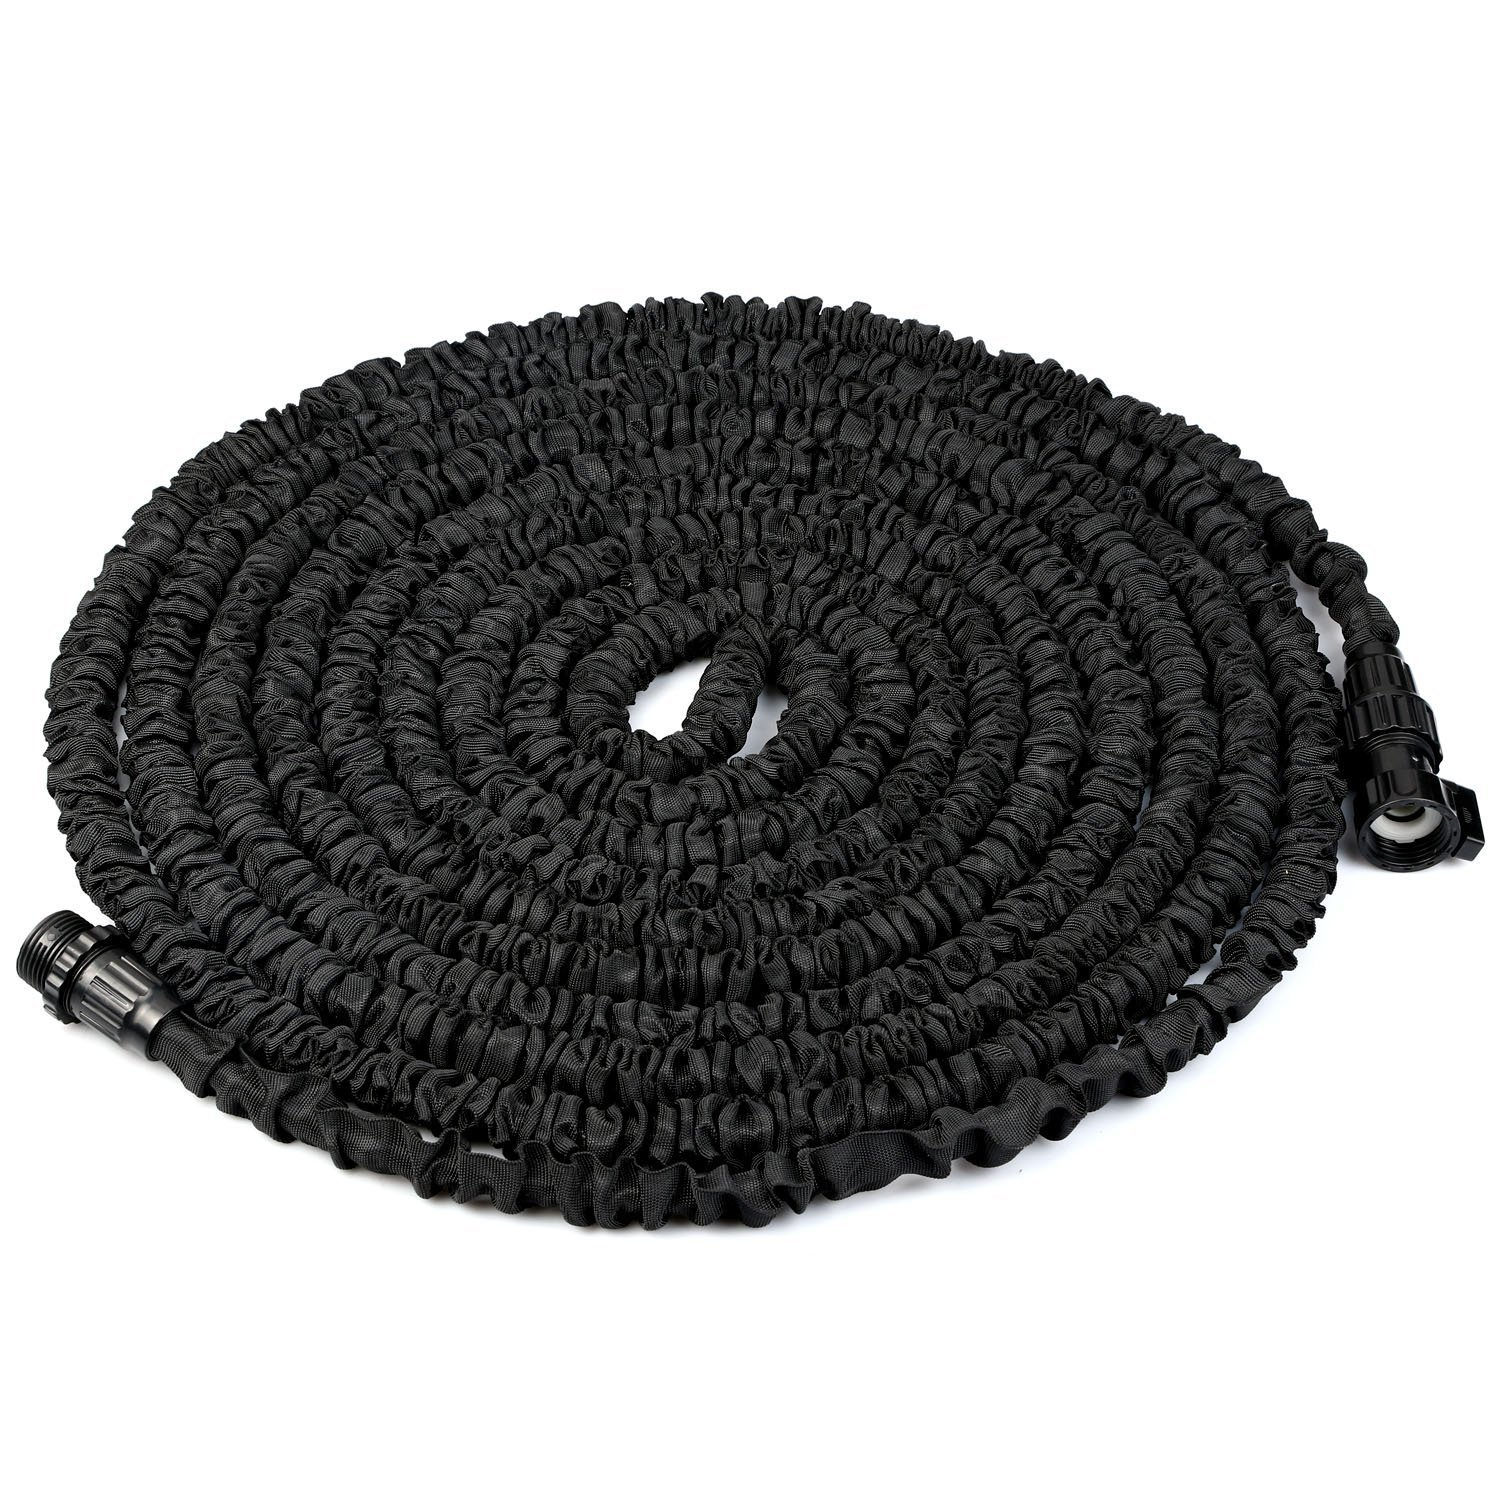 TINANA 75FT Expandable Garden Hose, Lightweight and Durable Expanding Garden Hose with Triple Layer Latex Core & Latest Improved Extra Strength Fabric Protection for All Your Watering & Car Wash Use